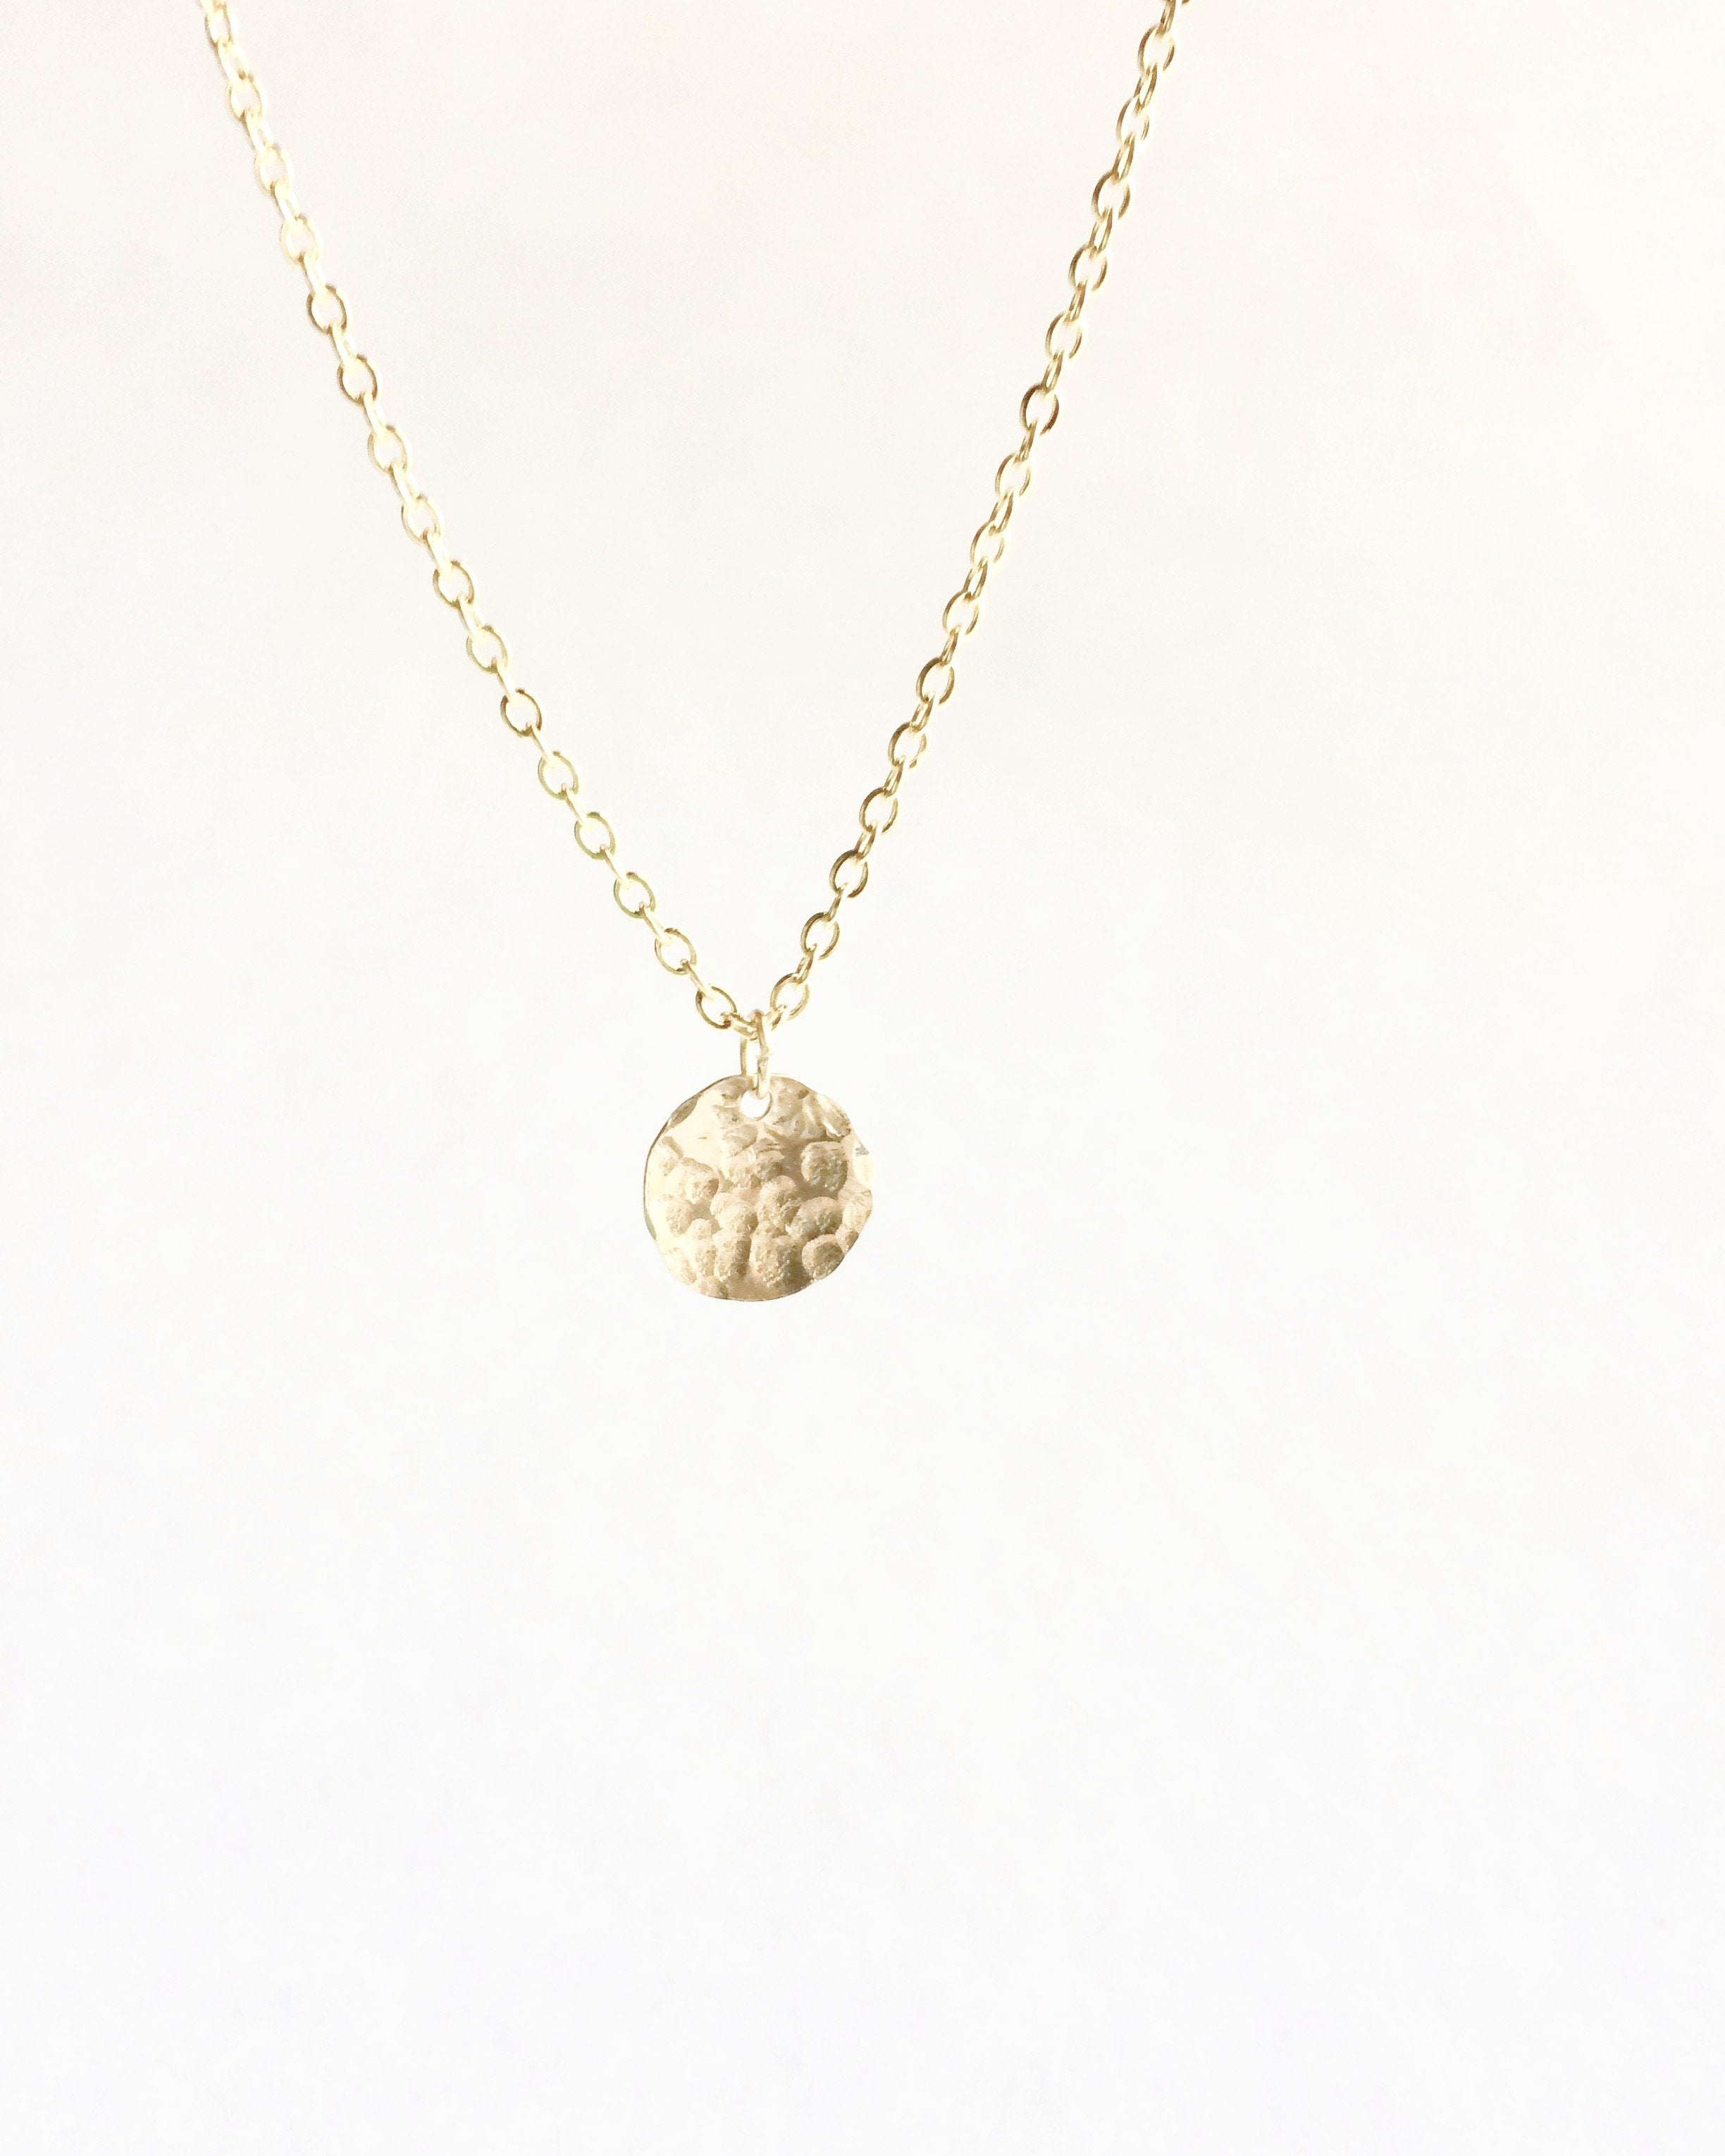 Hammered Tiny Disc Necklace | Delicate Disc Necklace | IB Jewelry